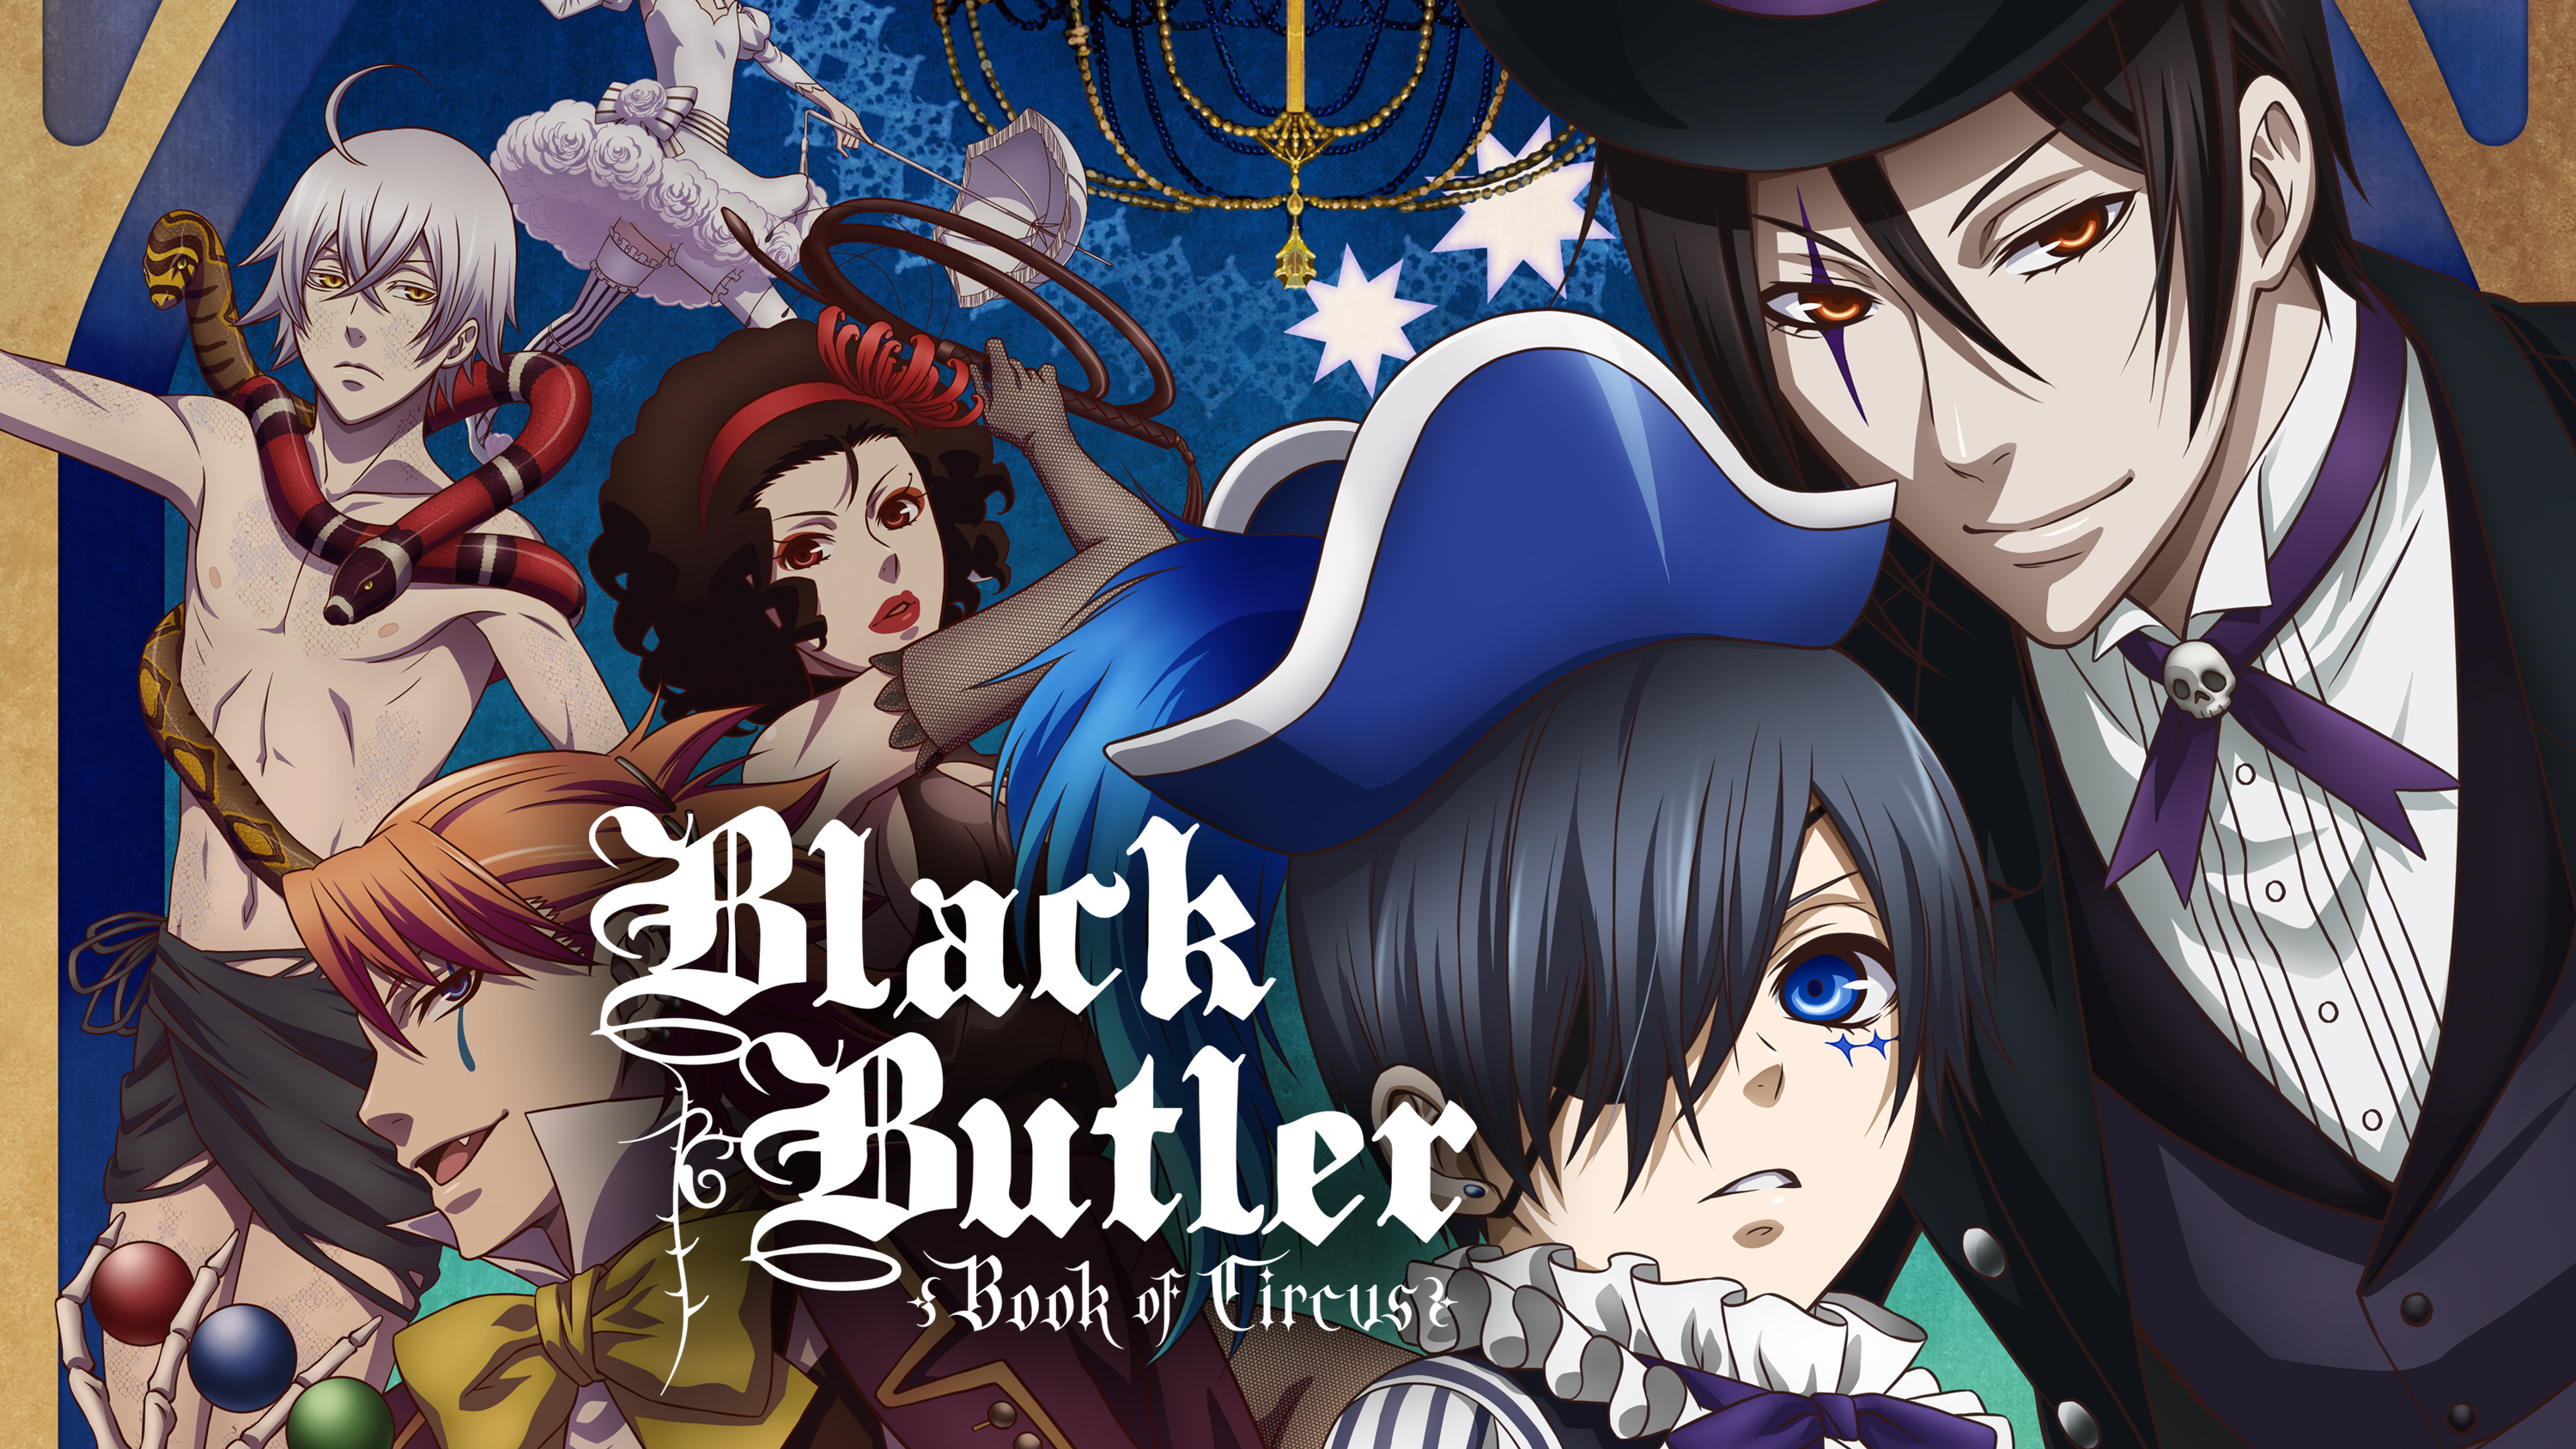 Watch Black Butler Episodes Sub Dub Drama Psychological Anime